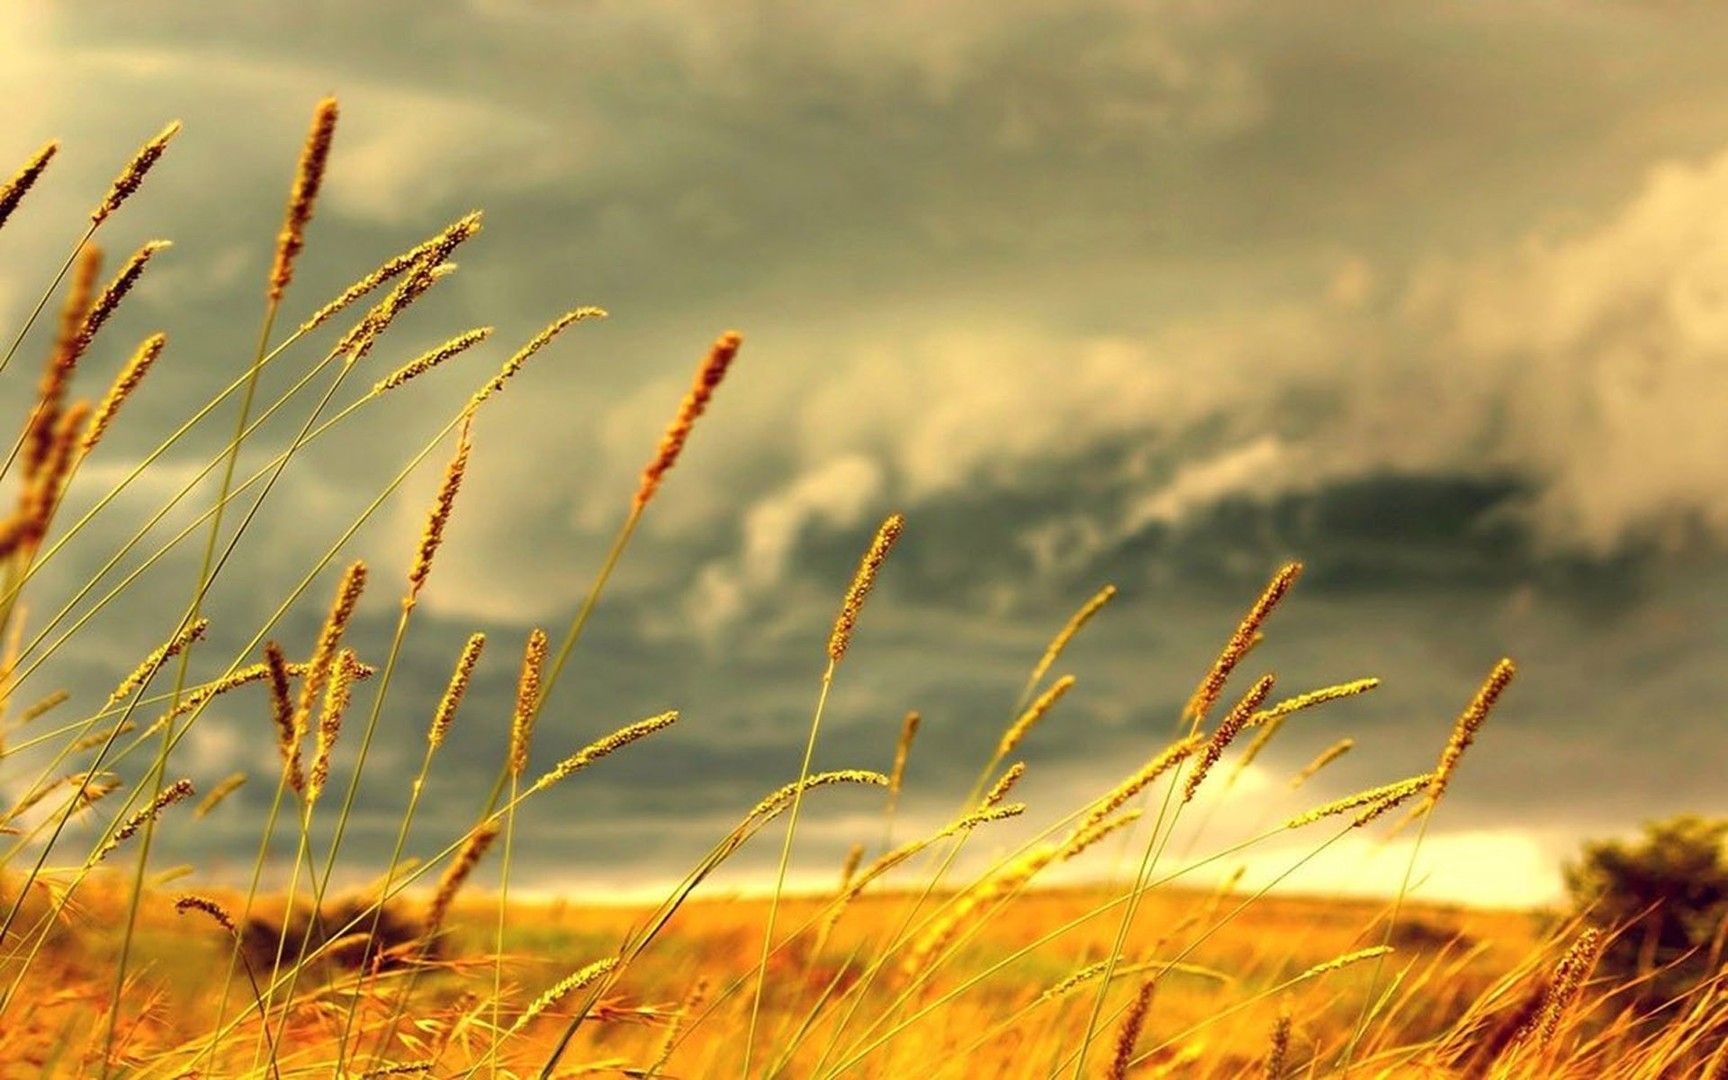 wind images hd